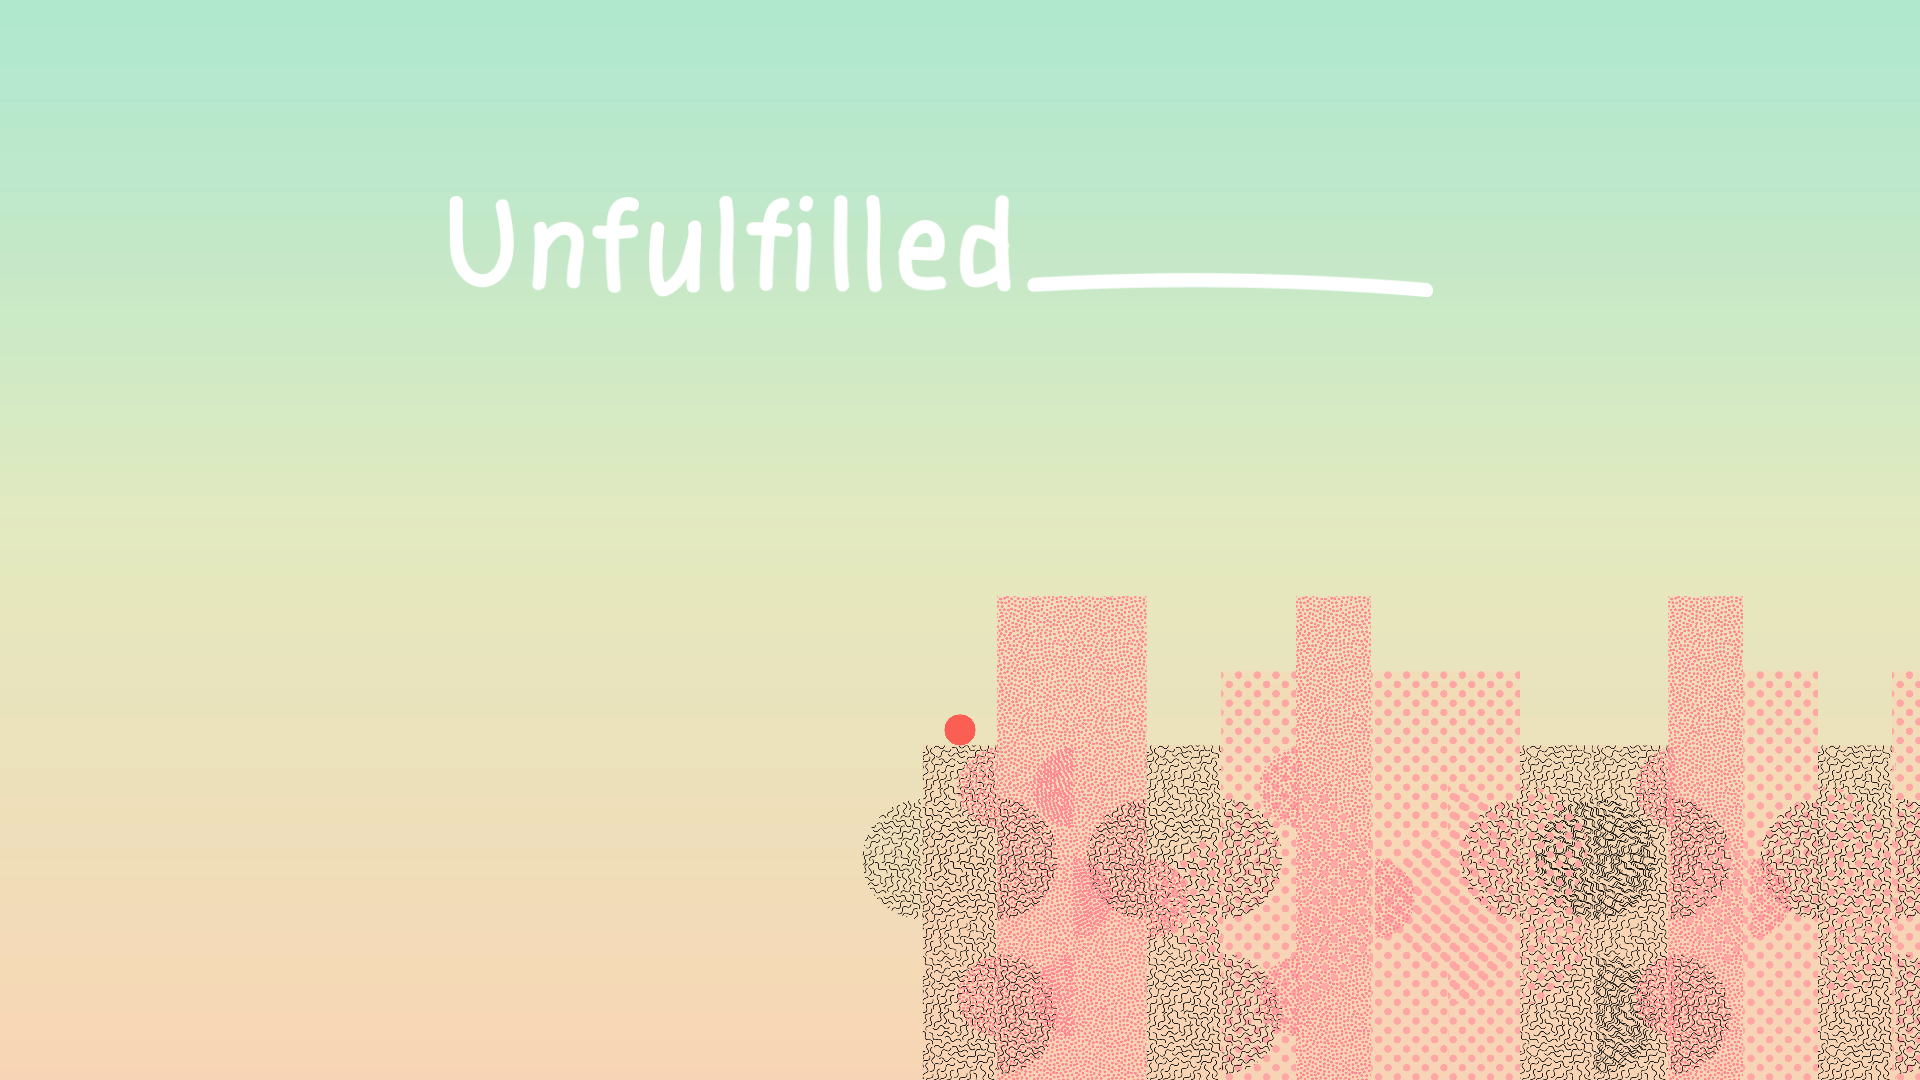 unfulfilled